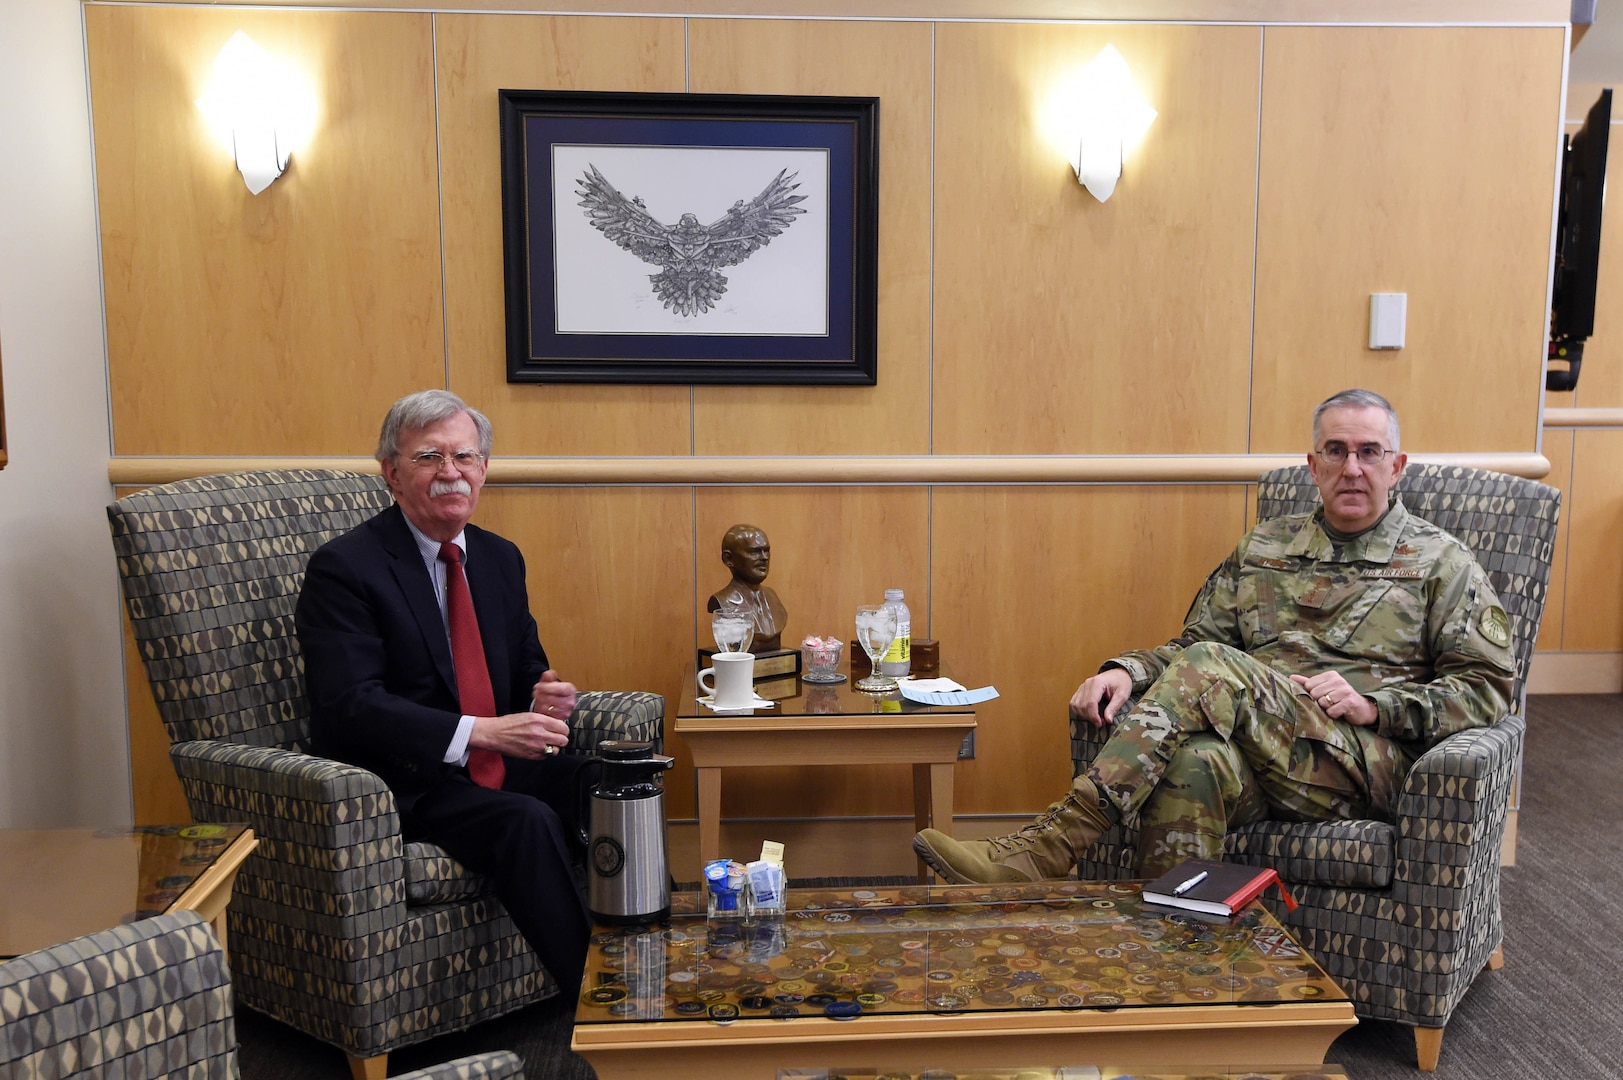 Ambassador John Bolton, National Security Advisor, meets with U.S. Air Force Gen. John Hyten, commander of United States Strategic Command (USSTRATCOM), during his visit to USSTRATCOM at Offutt Air Force Base, Neb., Feb. 14, 2019. The Ambassador observed USSTRATCOM's combat-ready force, engaged in discussions with senior leaders and thanked warfighters for their service to the nation. Bolton's visit also highlighted USSTRATCOM's critical role in the National Security Strategy. (U.S. Air Force photo by Master Sgt. April Wickes)